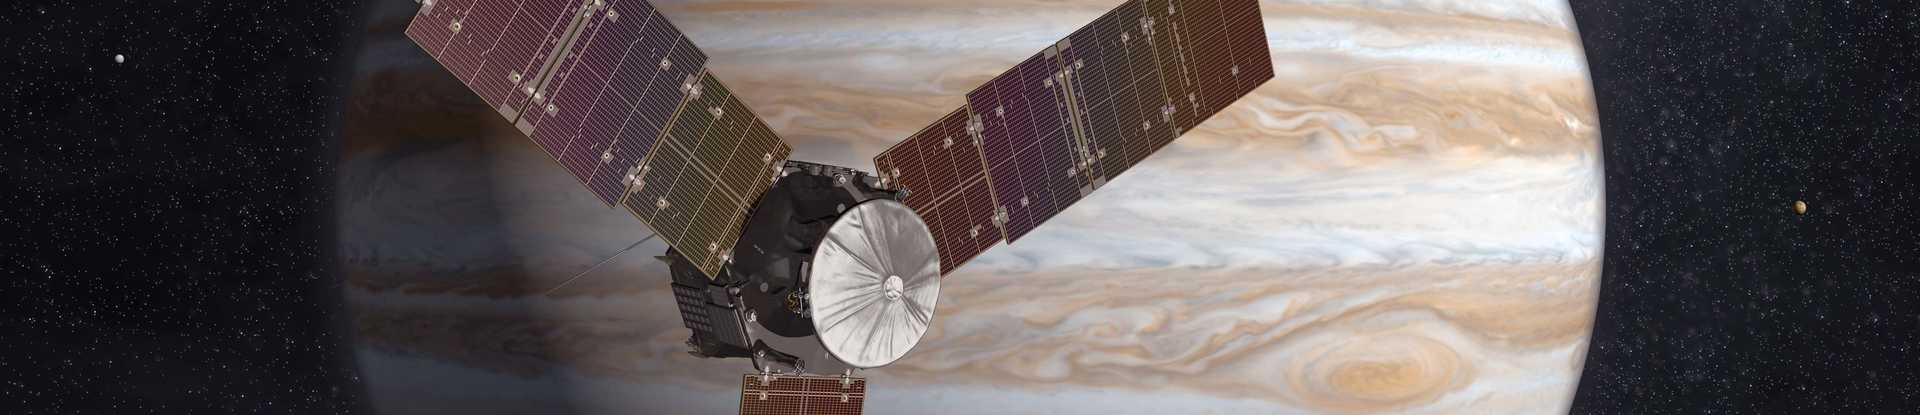 Technology Today Podcast-SwRI's Dr. Scott Bolton discusses leading NASA's Juno mission and exploring Jupiter